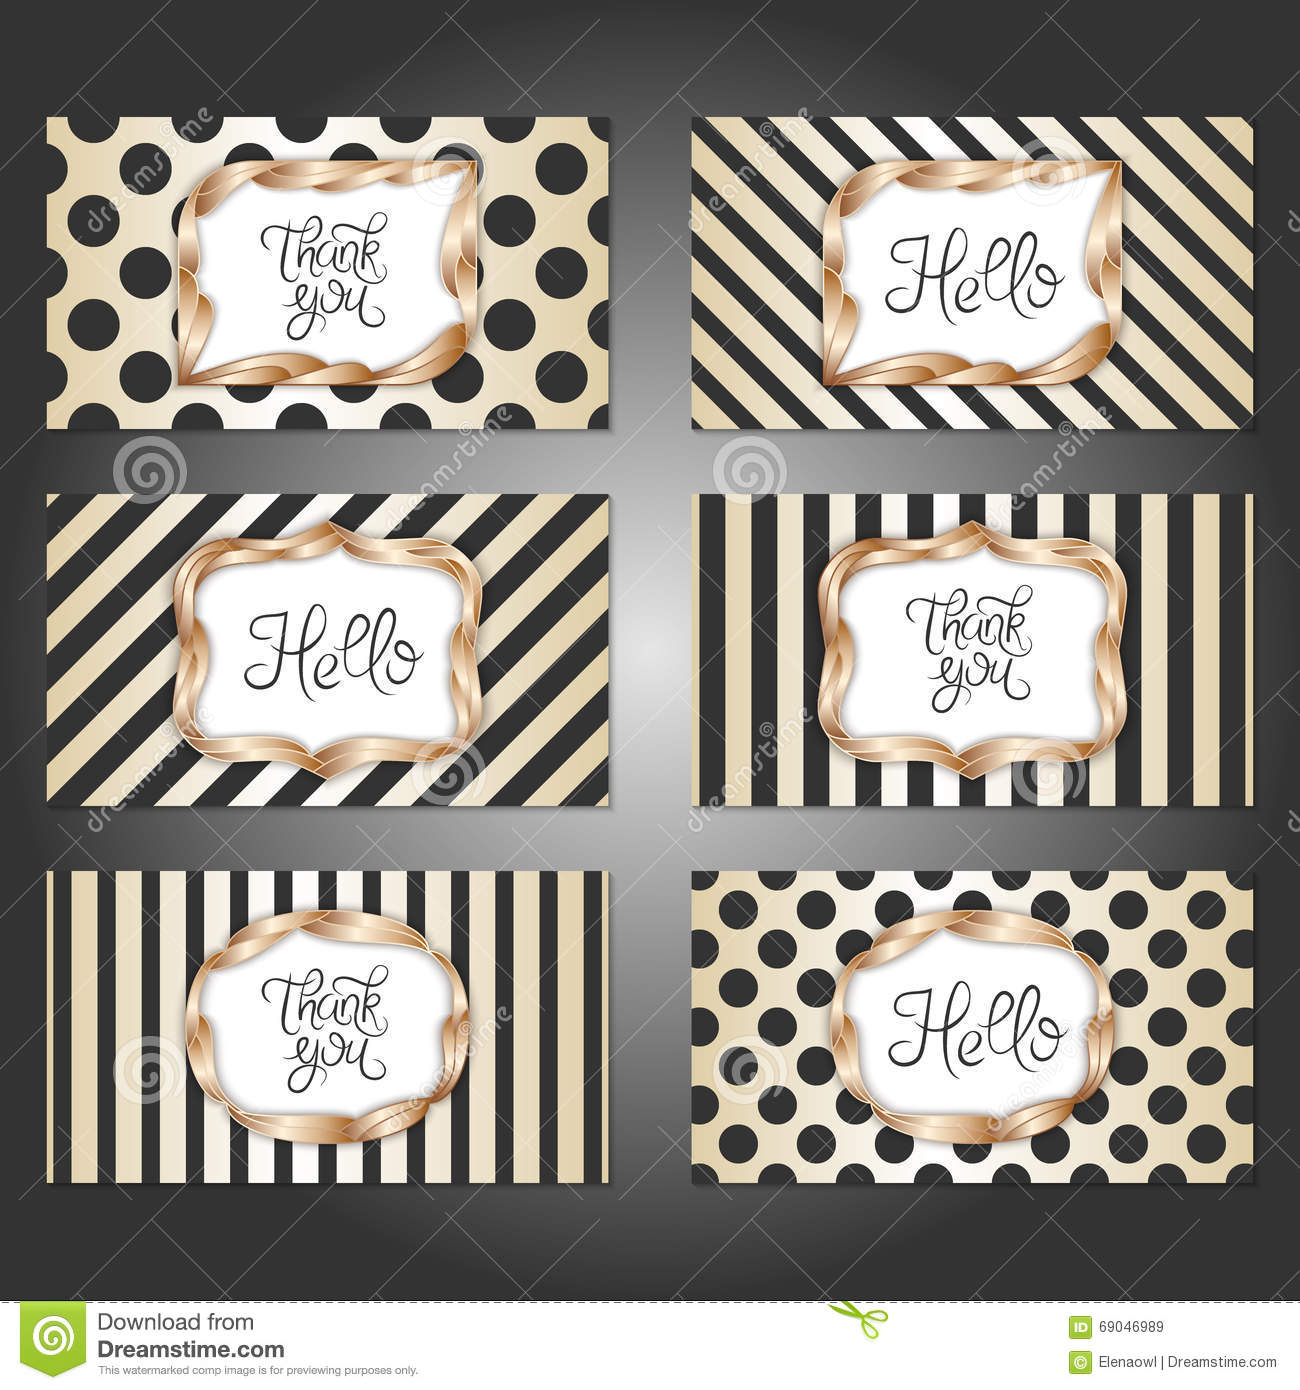 Set Of 6 Vintage Card Templates In Gold, Black And White Colors ...